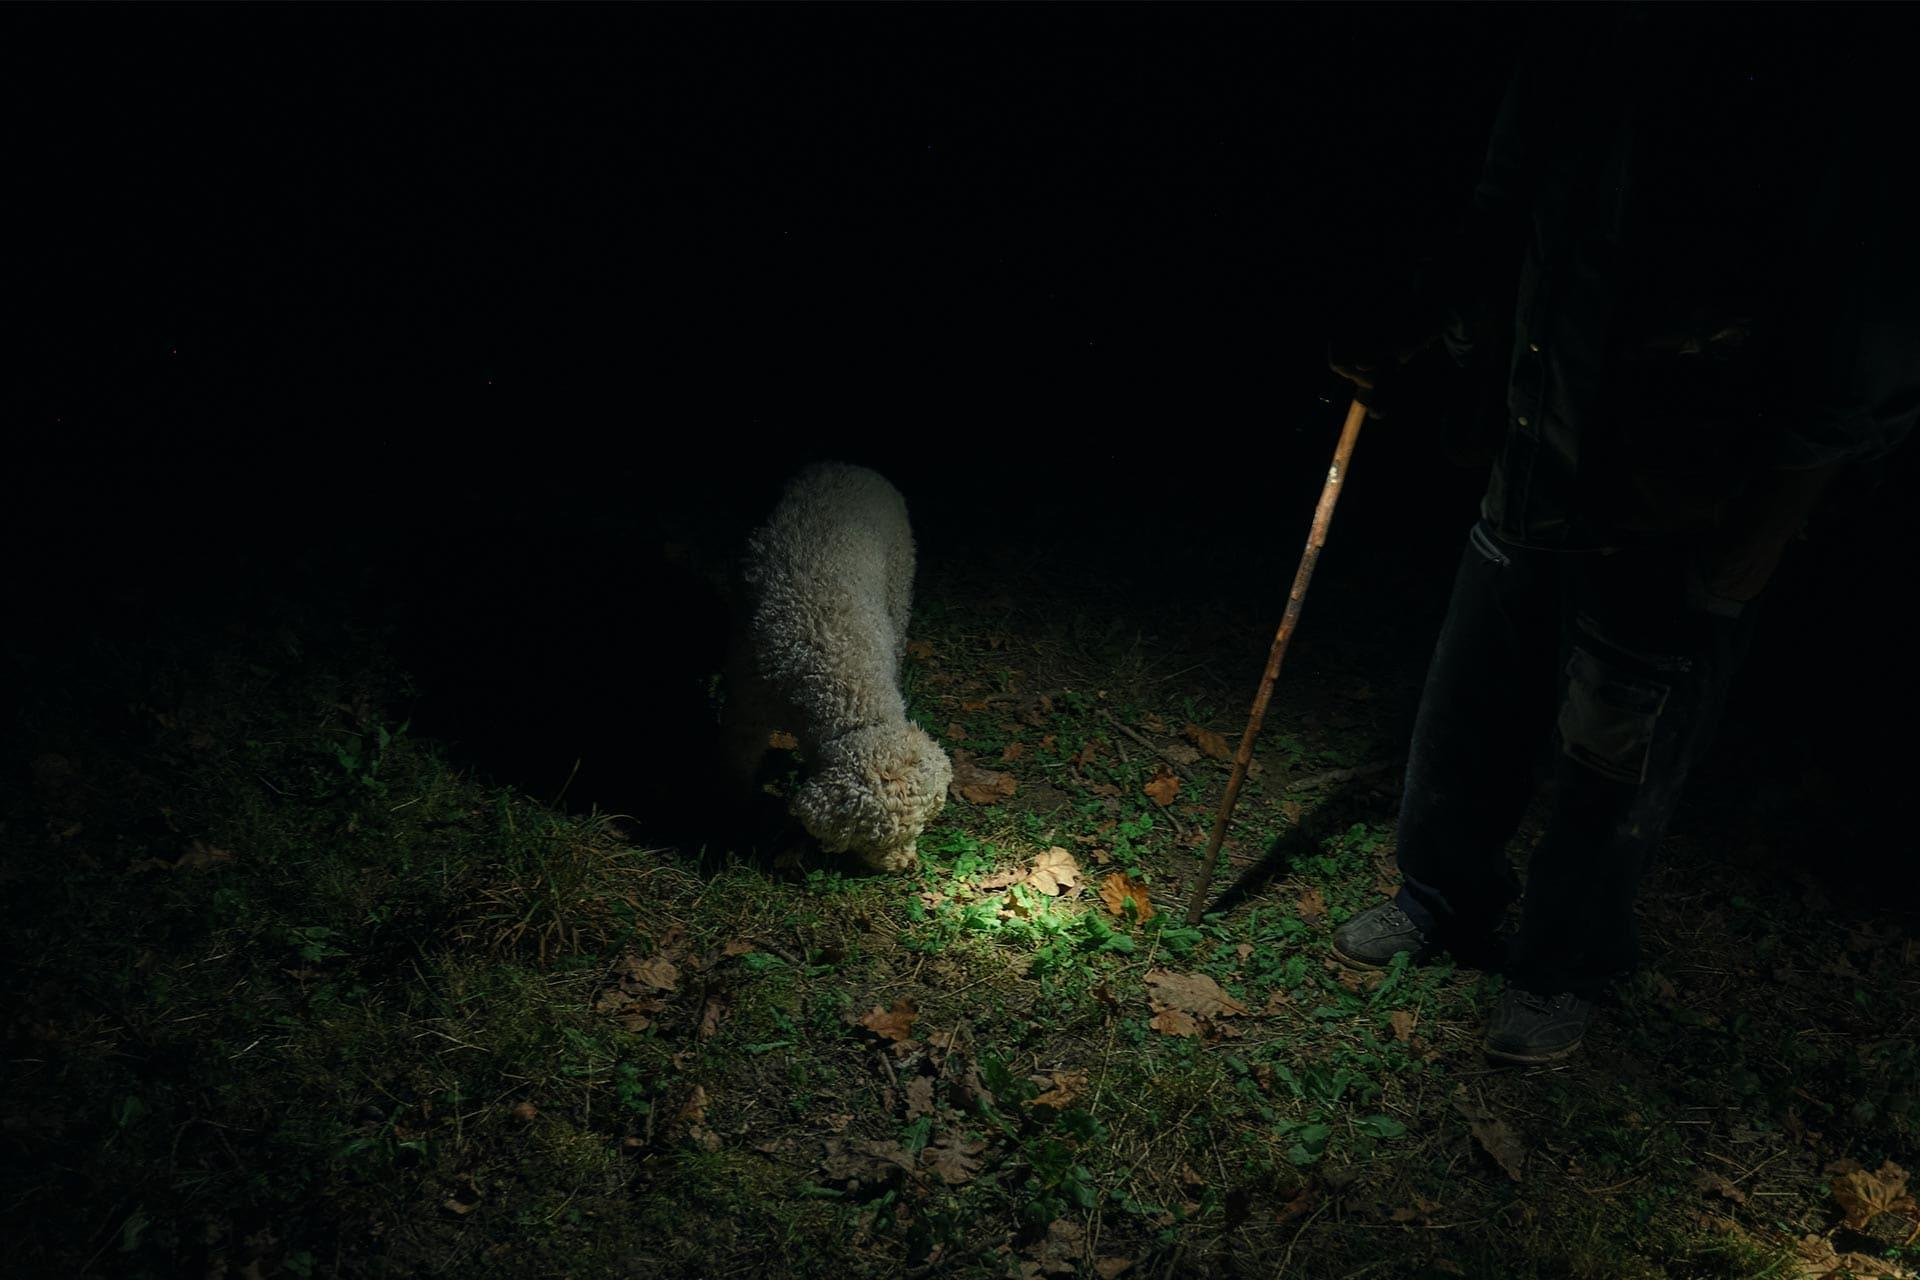 Dog looking for truffle in the dark